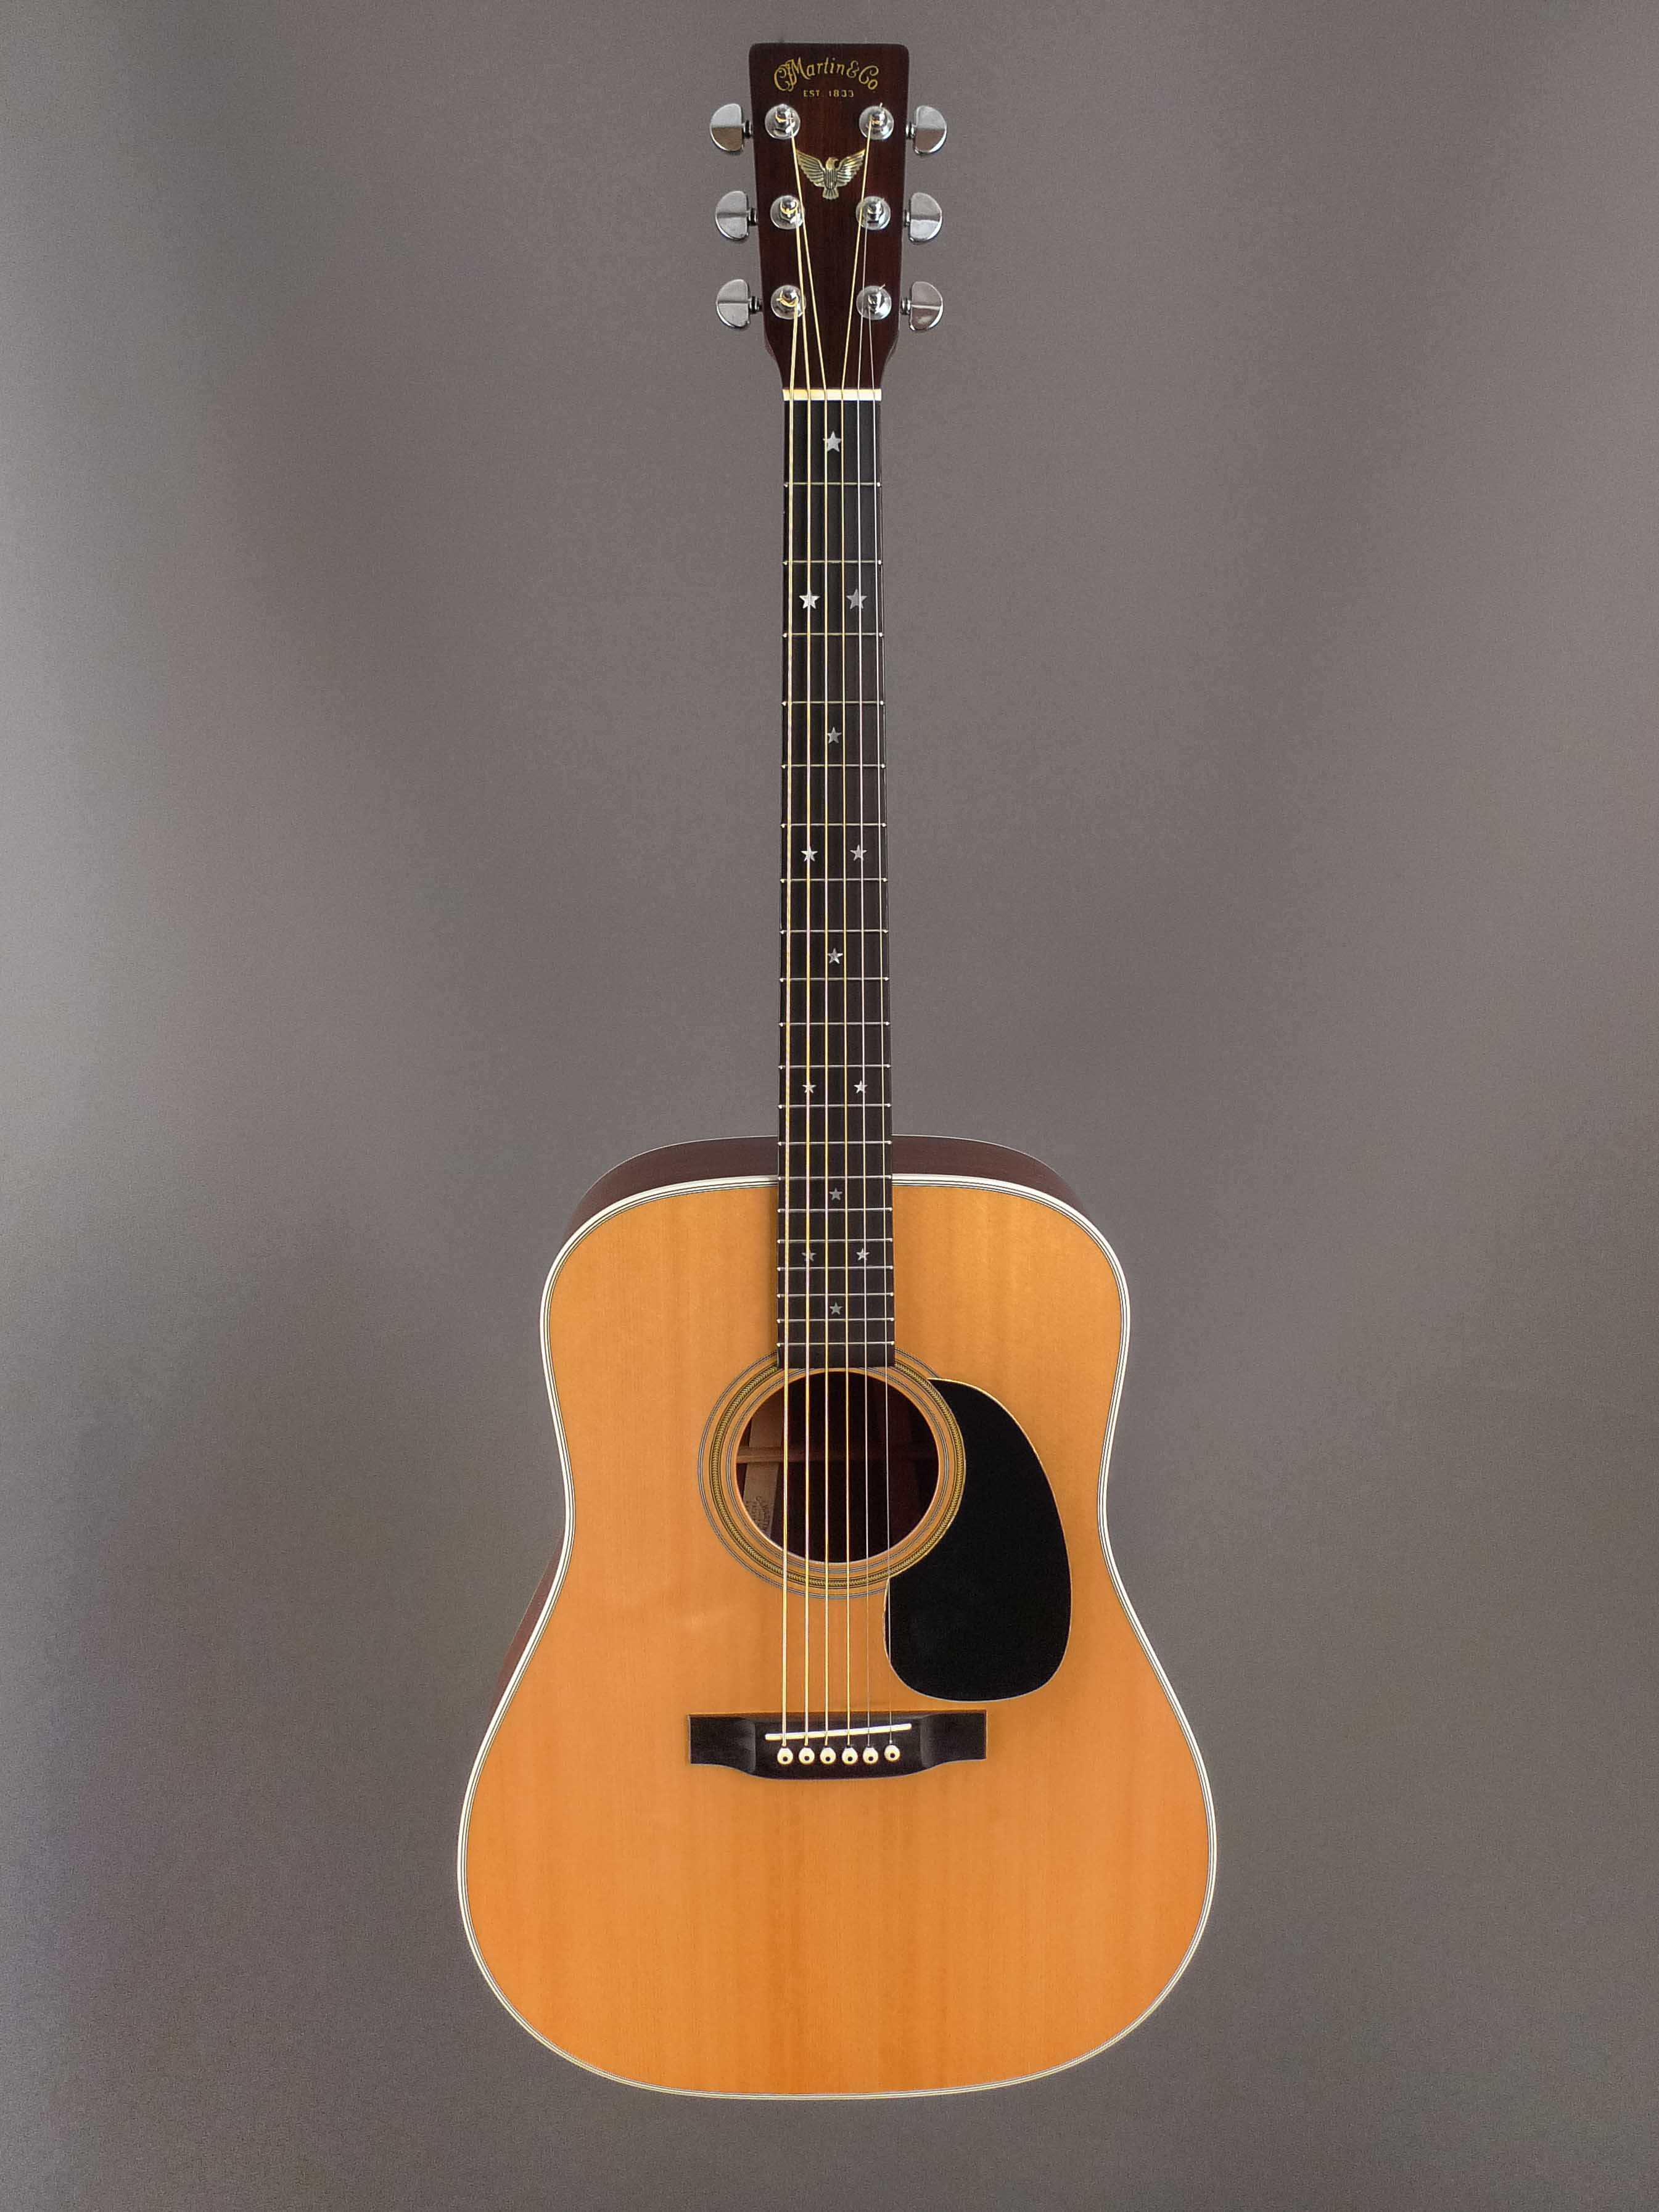 1976 Martin D-76 -  Acoustic Guitar Player Reviews